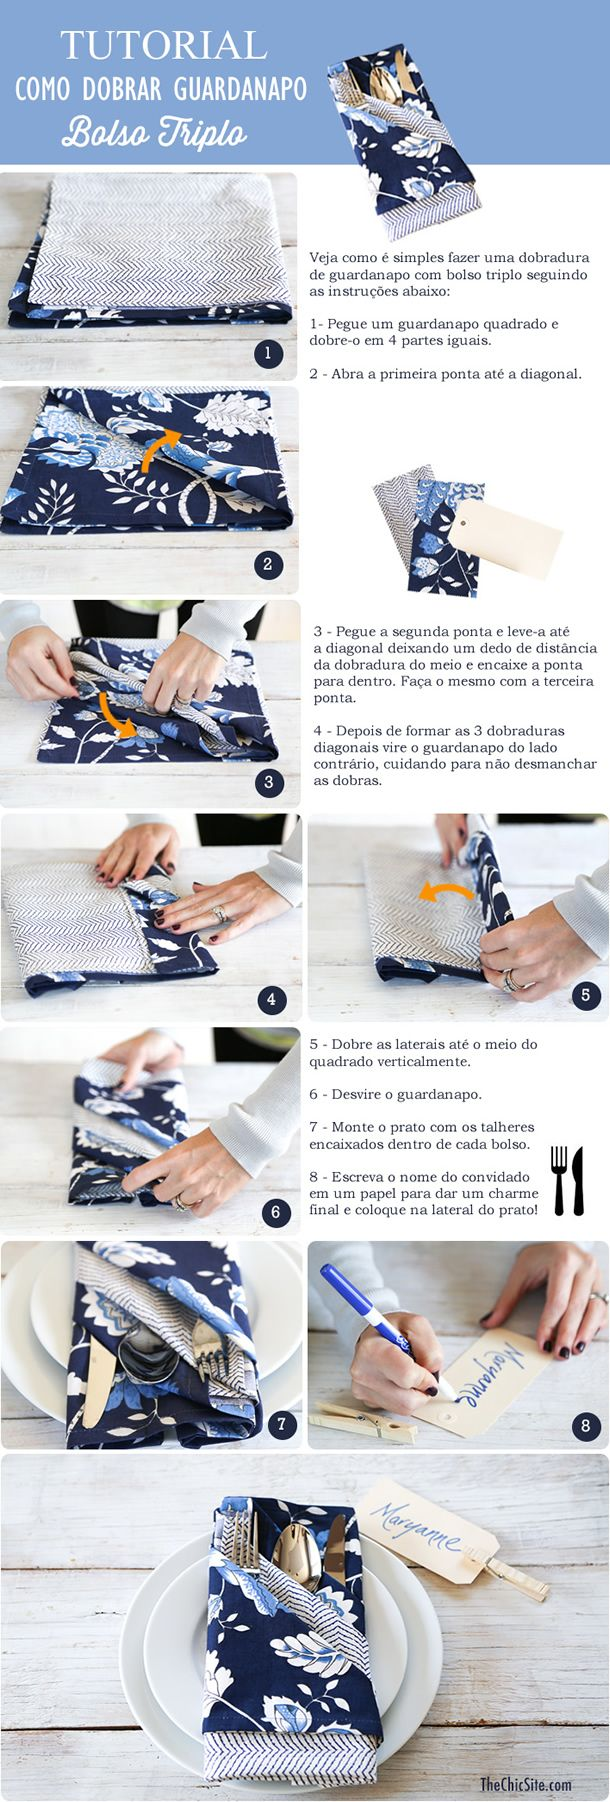 dobradura de guardanapo com bolso tripo, como colocar a mesa, mesa posta, napkin fold tutorial triple pocket, tabletop tablescape inspiration, decor